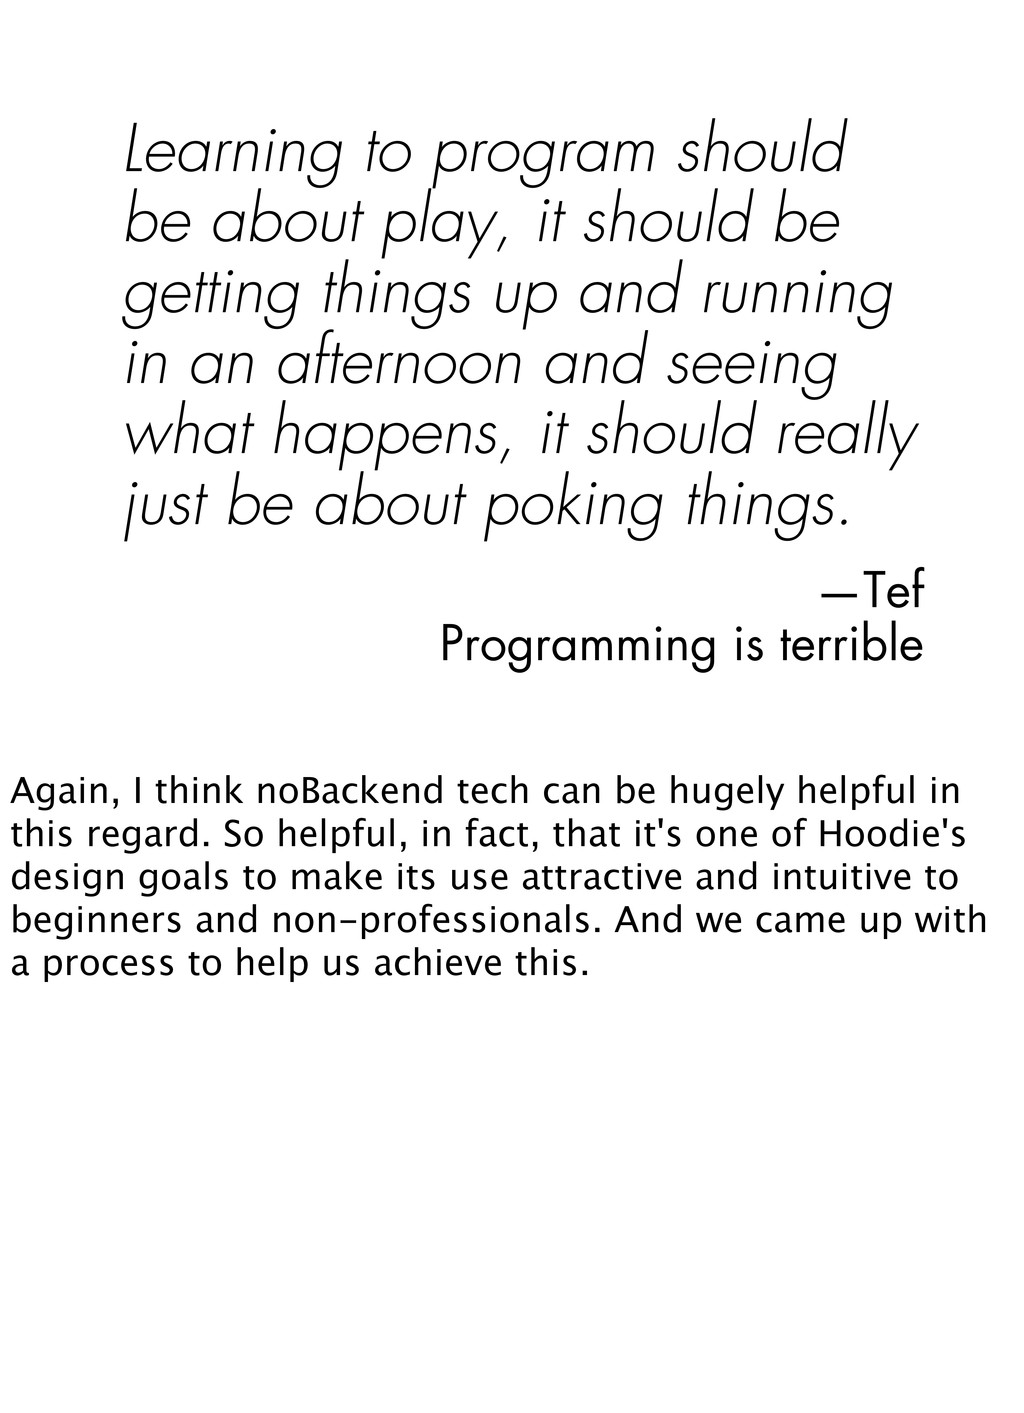 Learning to program should be about play, it sh...